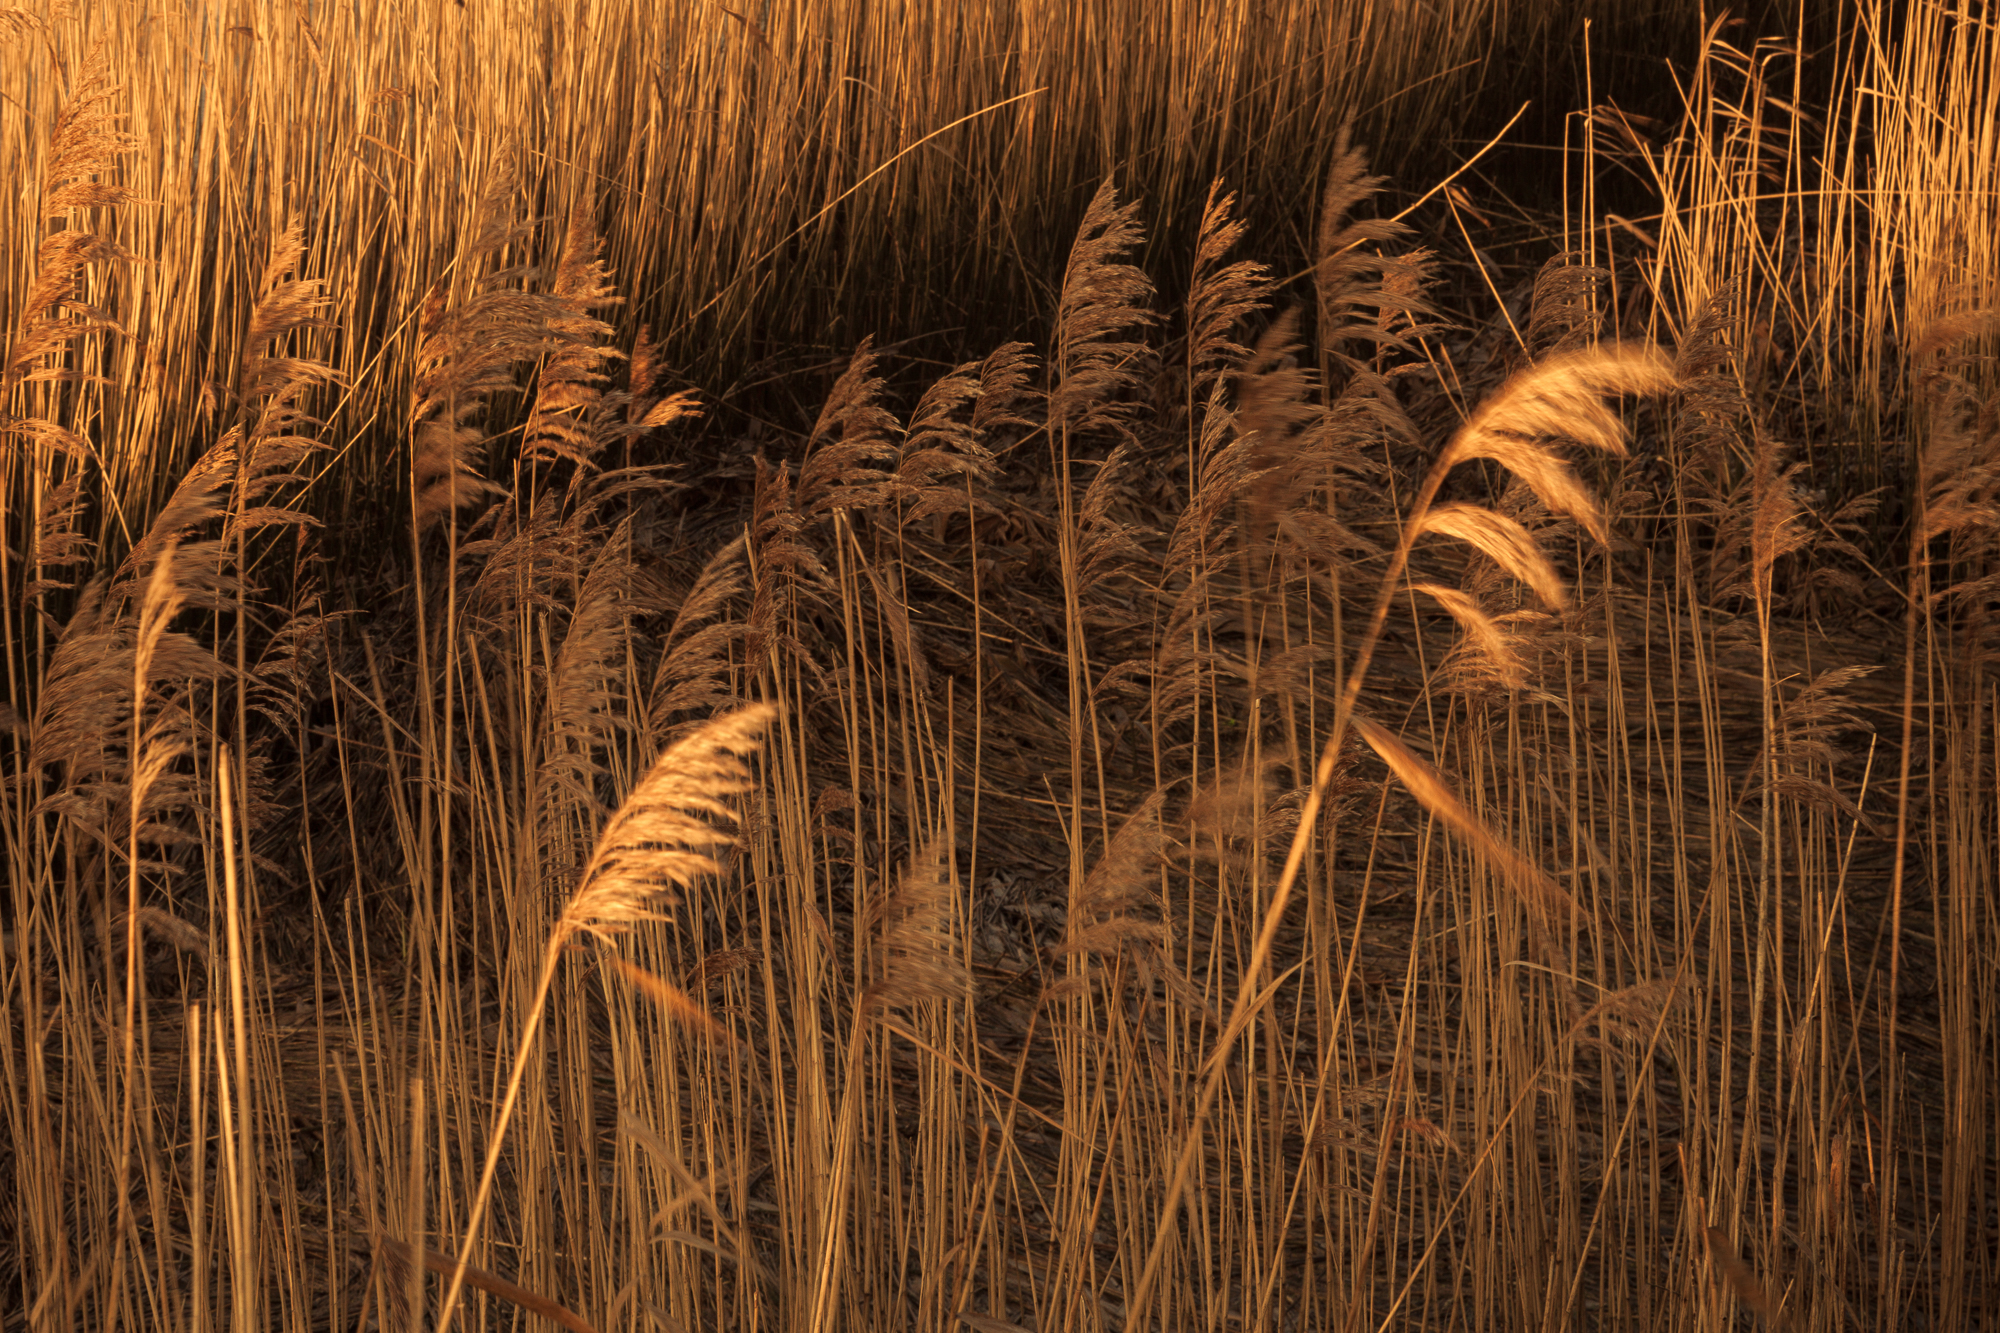 Light and shadows on the reed beds